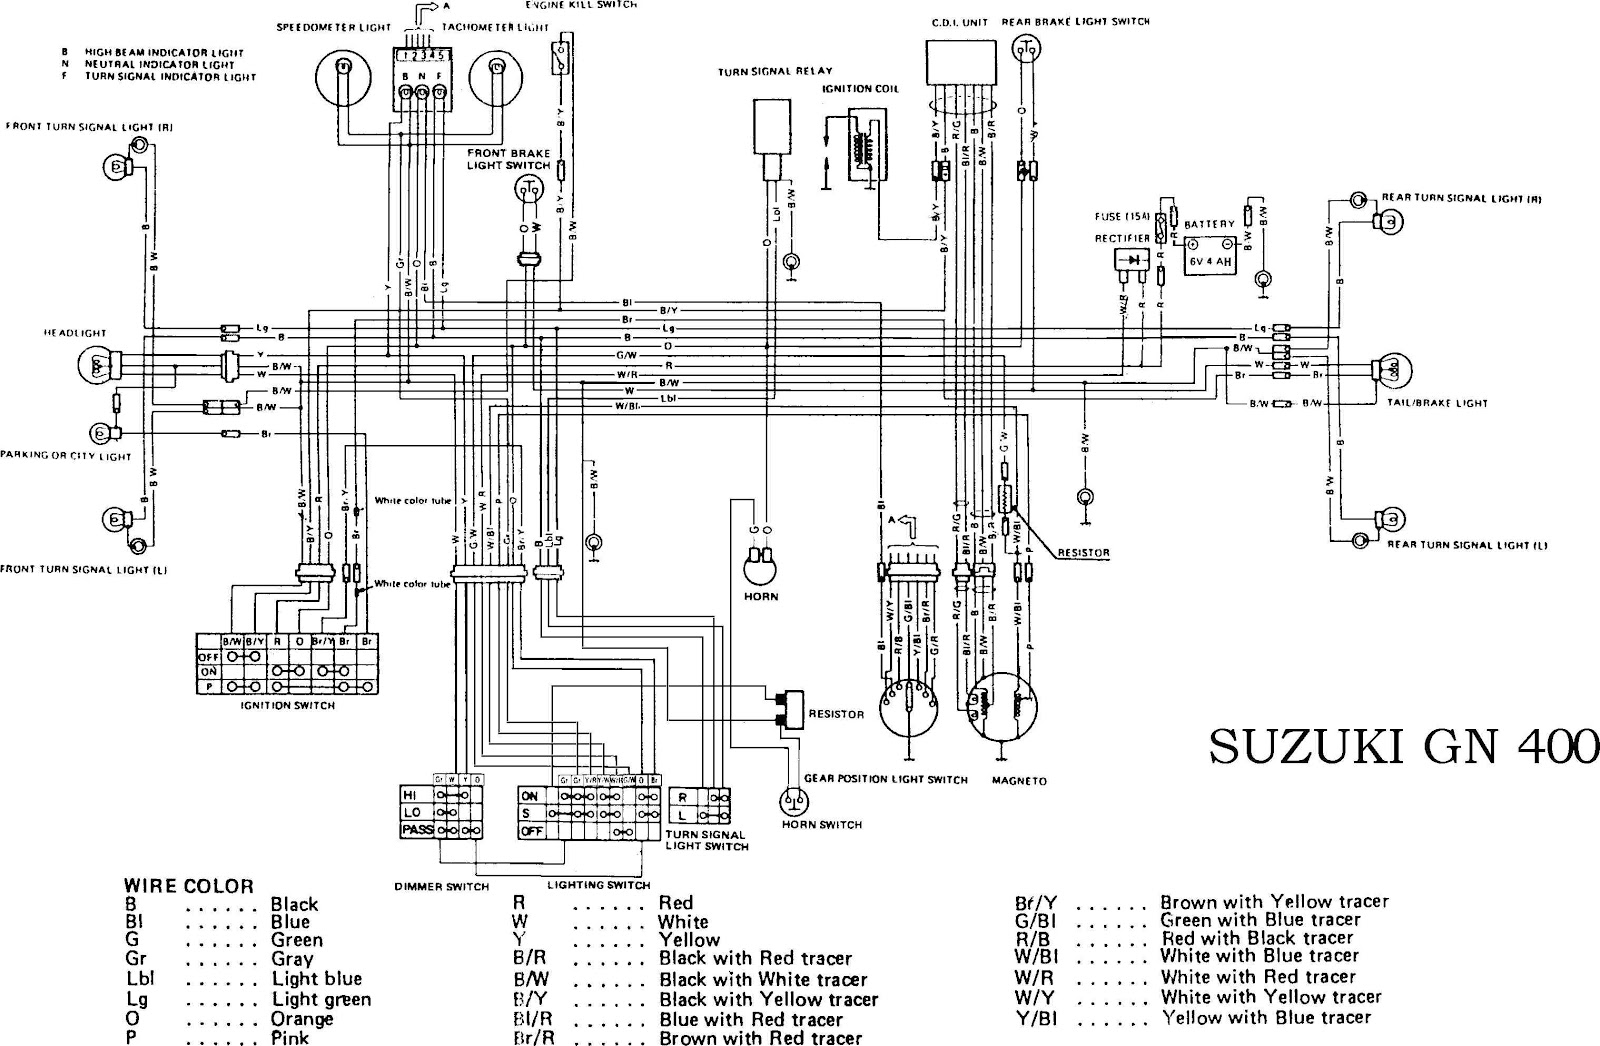 99 Katana 600 Wiring Diagram Guide And Troubleshooting Of Suzuki Free For You U2022 Rh Stardrop Store 1999